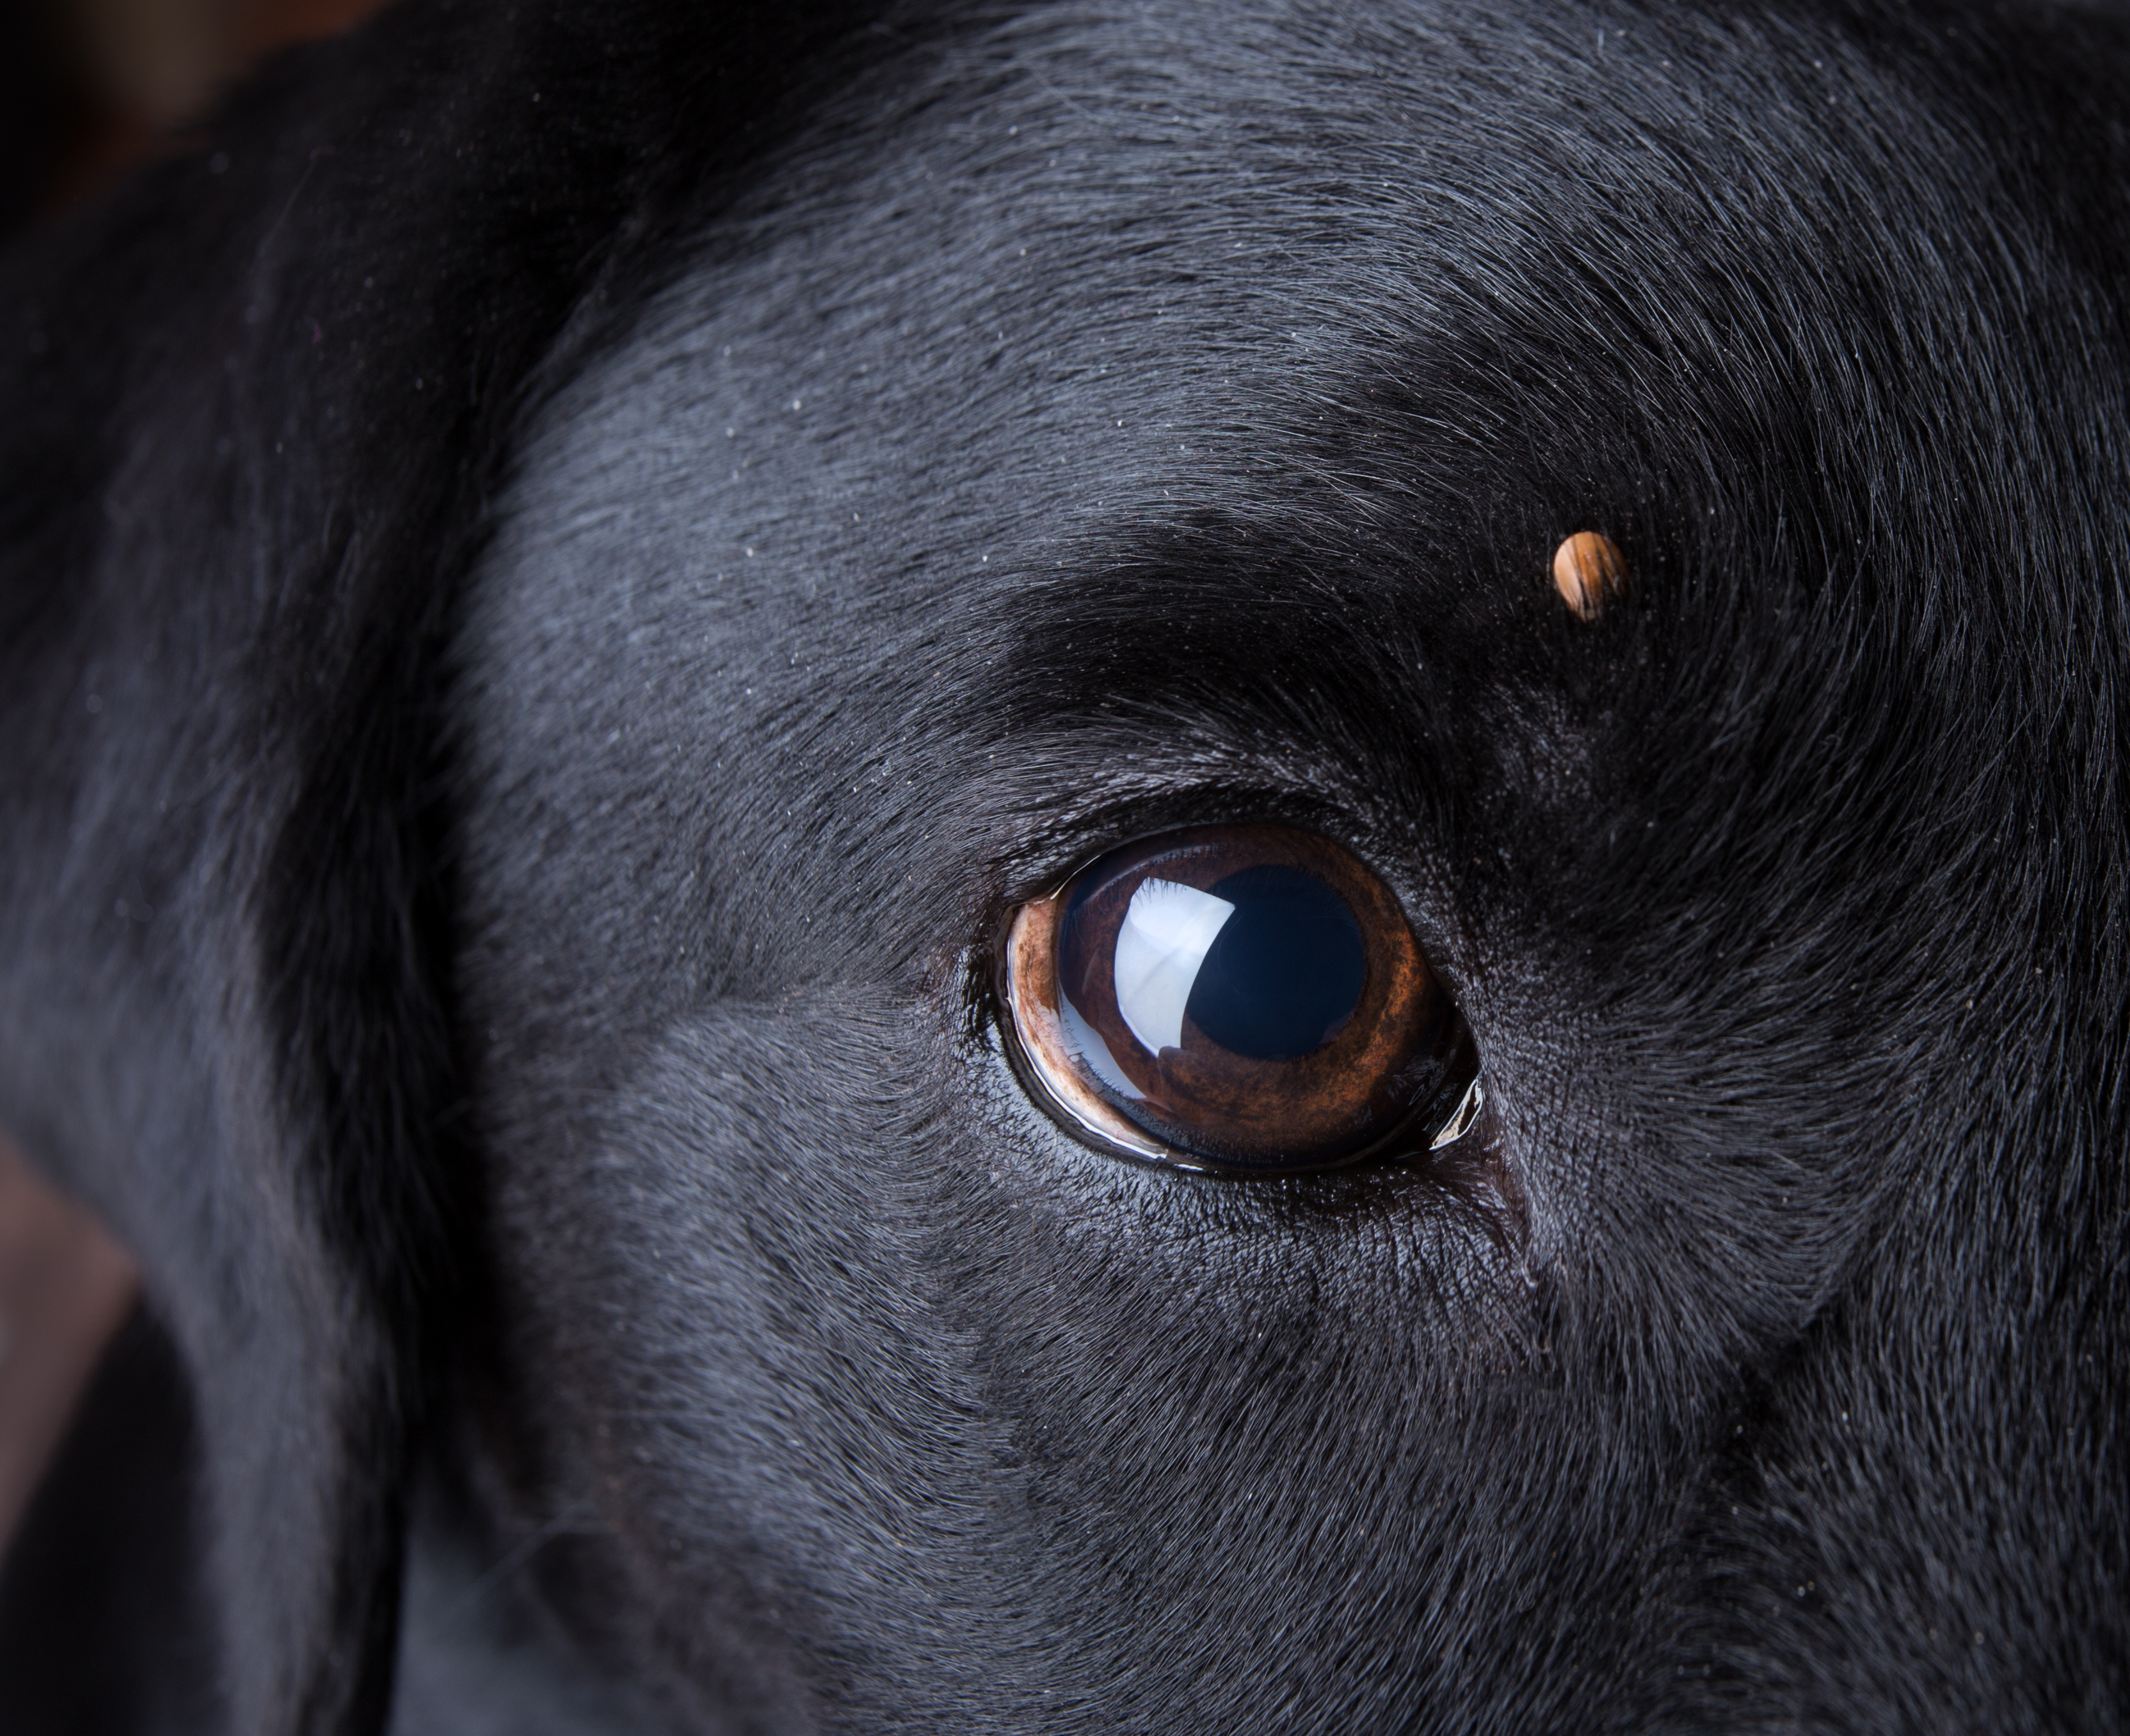 Babesia In Dogs: Symptoms, Causes, Diagnosis, Treatment Of